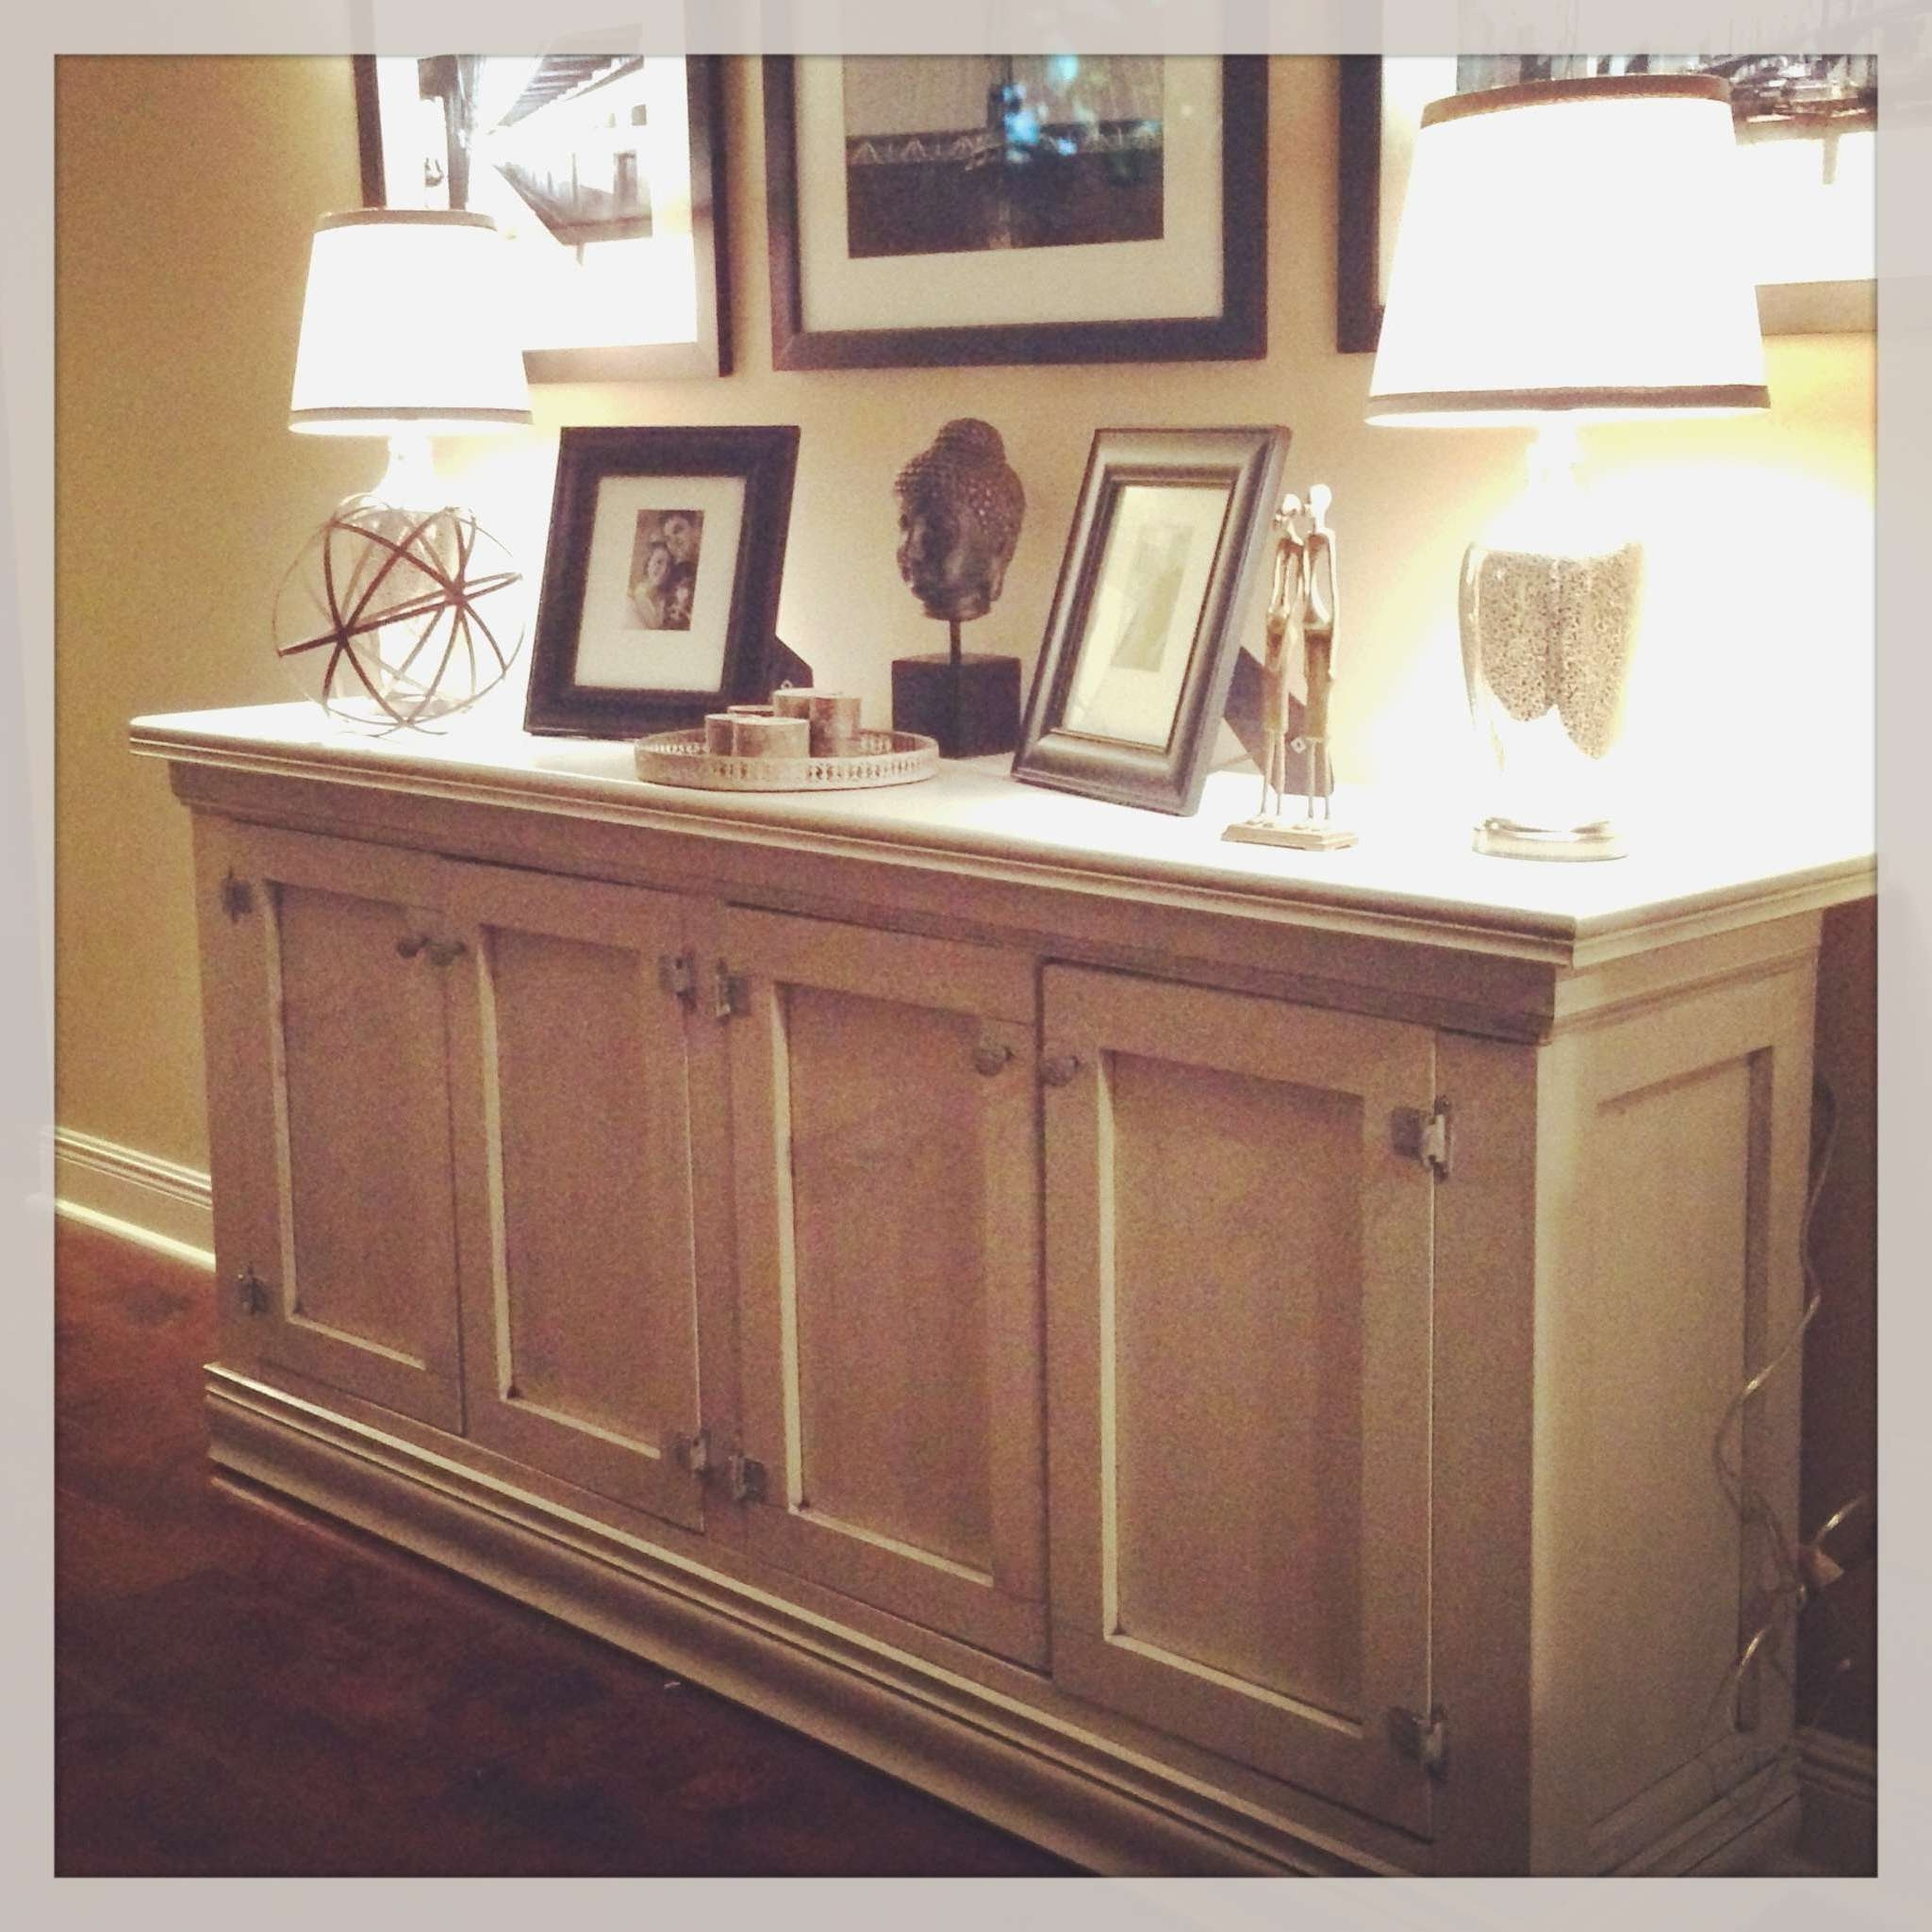 Explore Photos of Dining Room Buffets Sideboards (Showing 4 of 20 ...